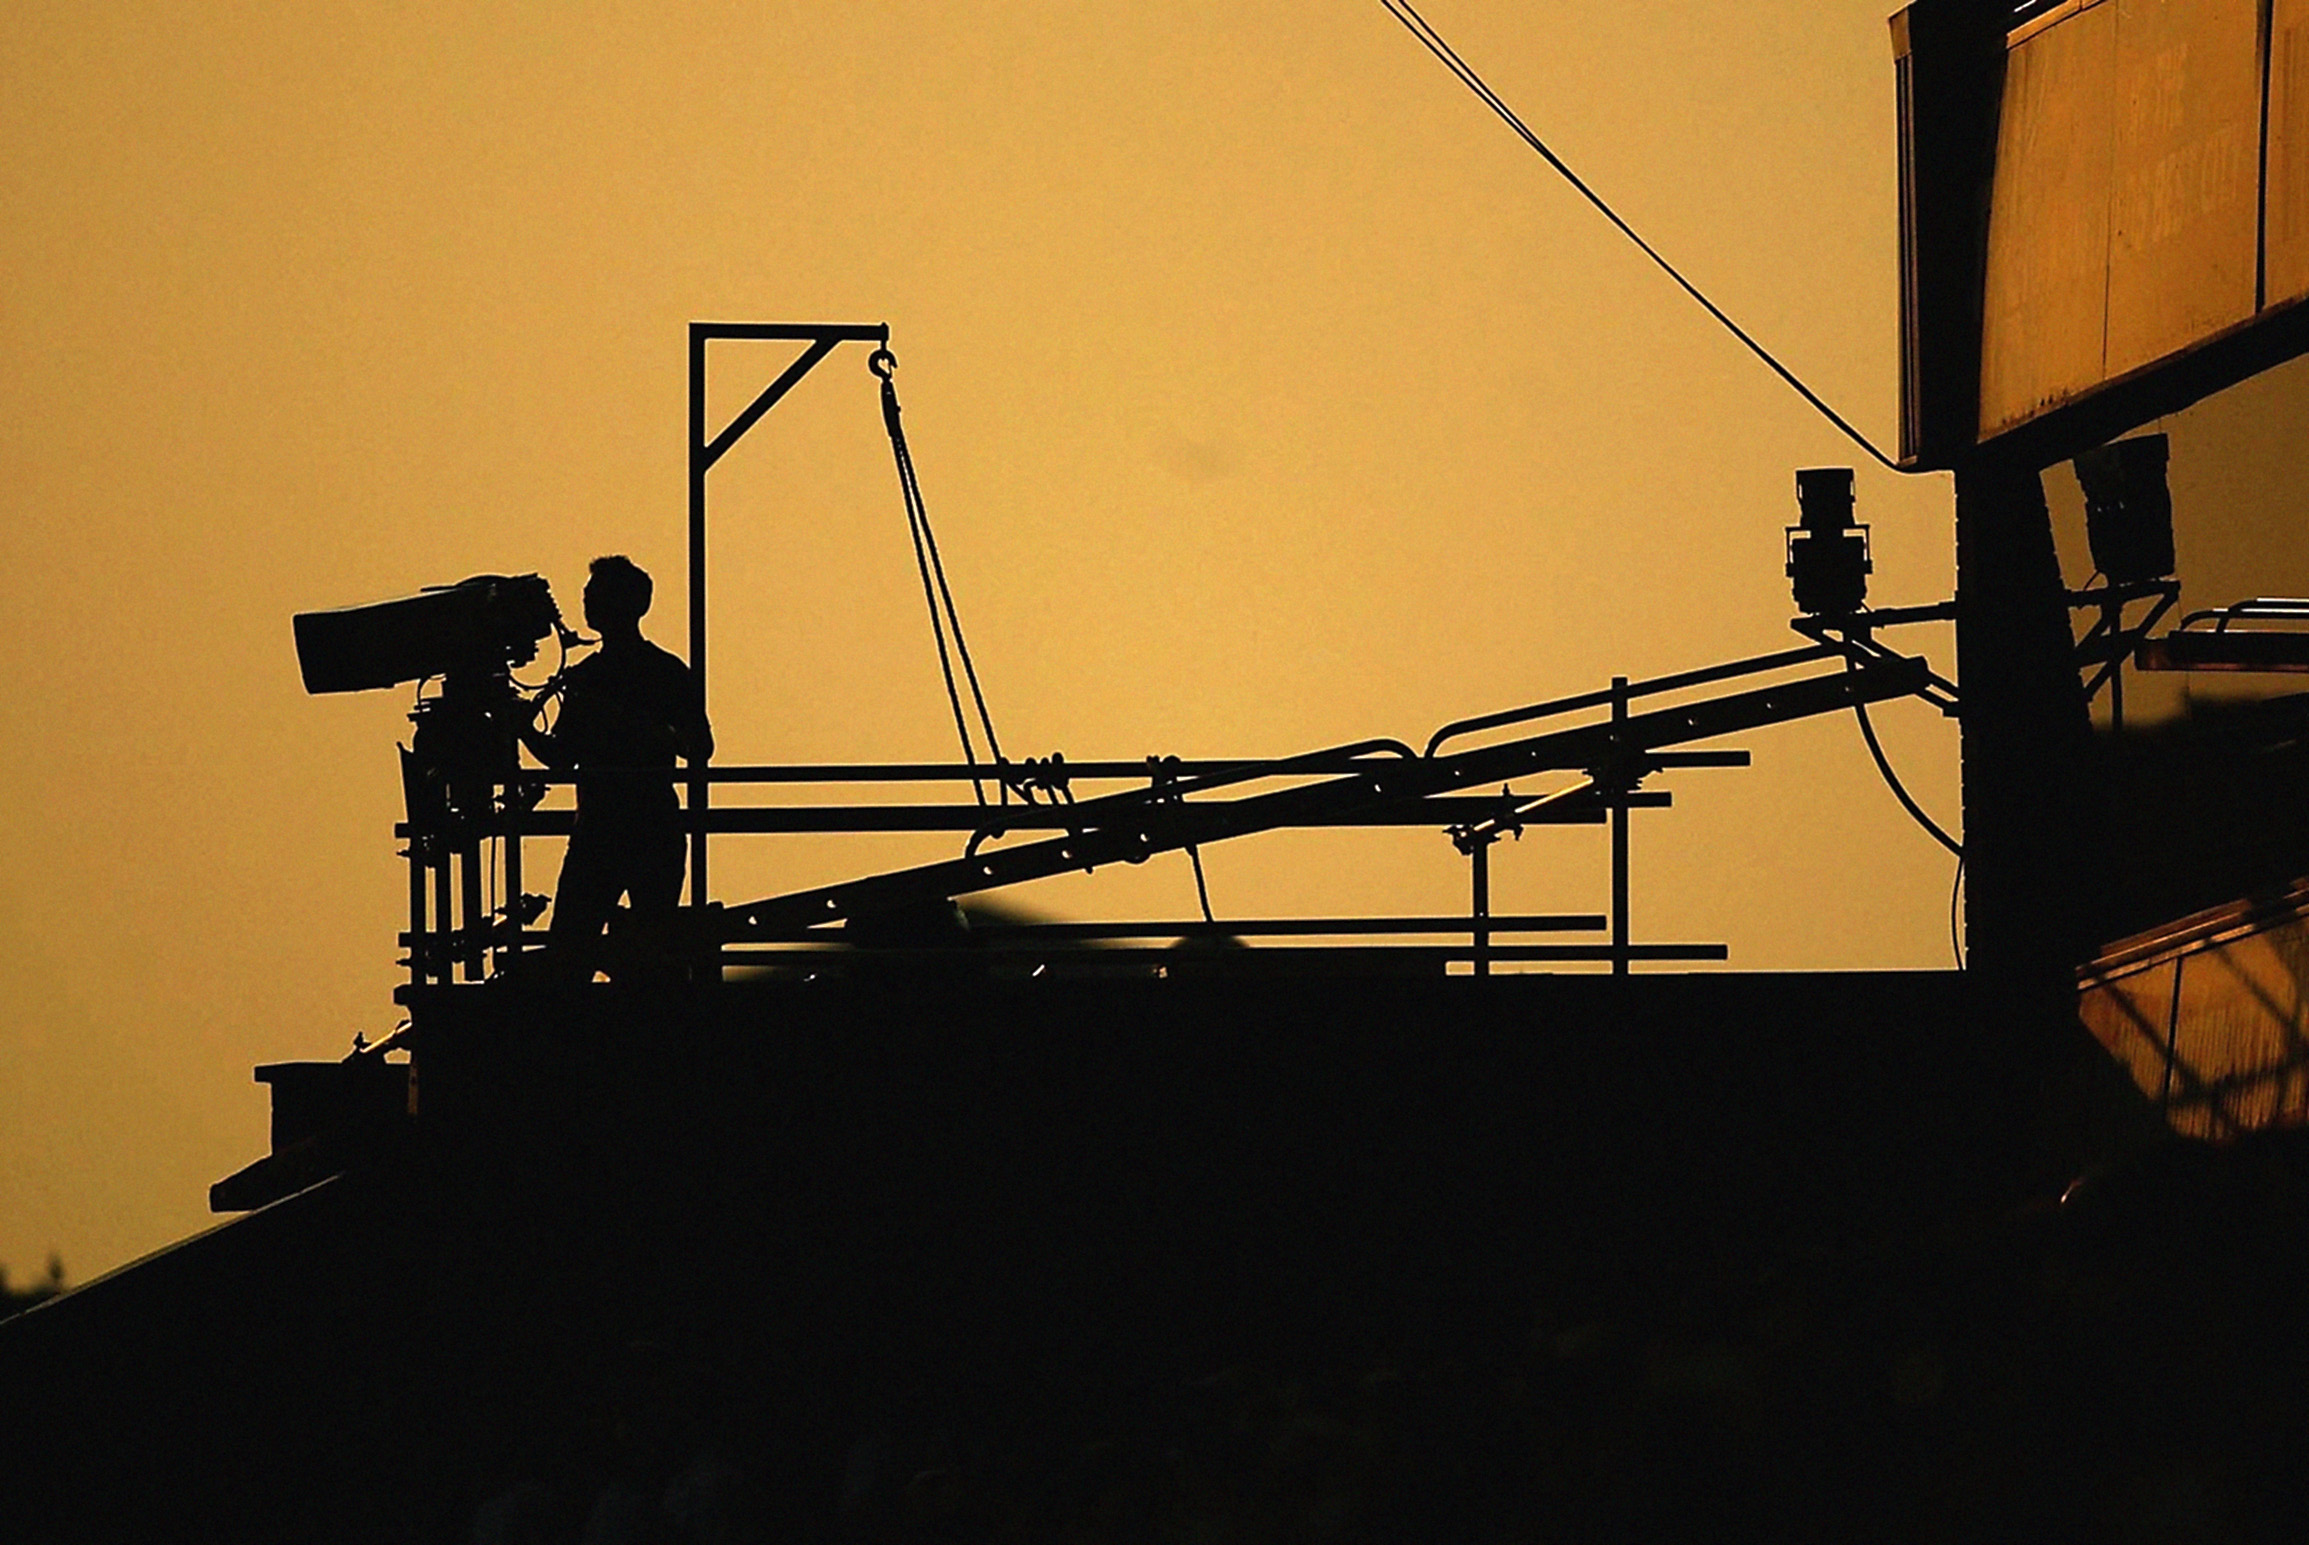 Television cameraman looks on as the sun sets in the background